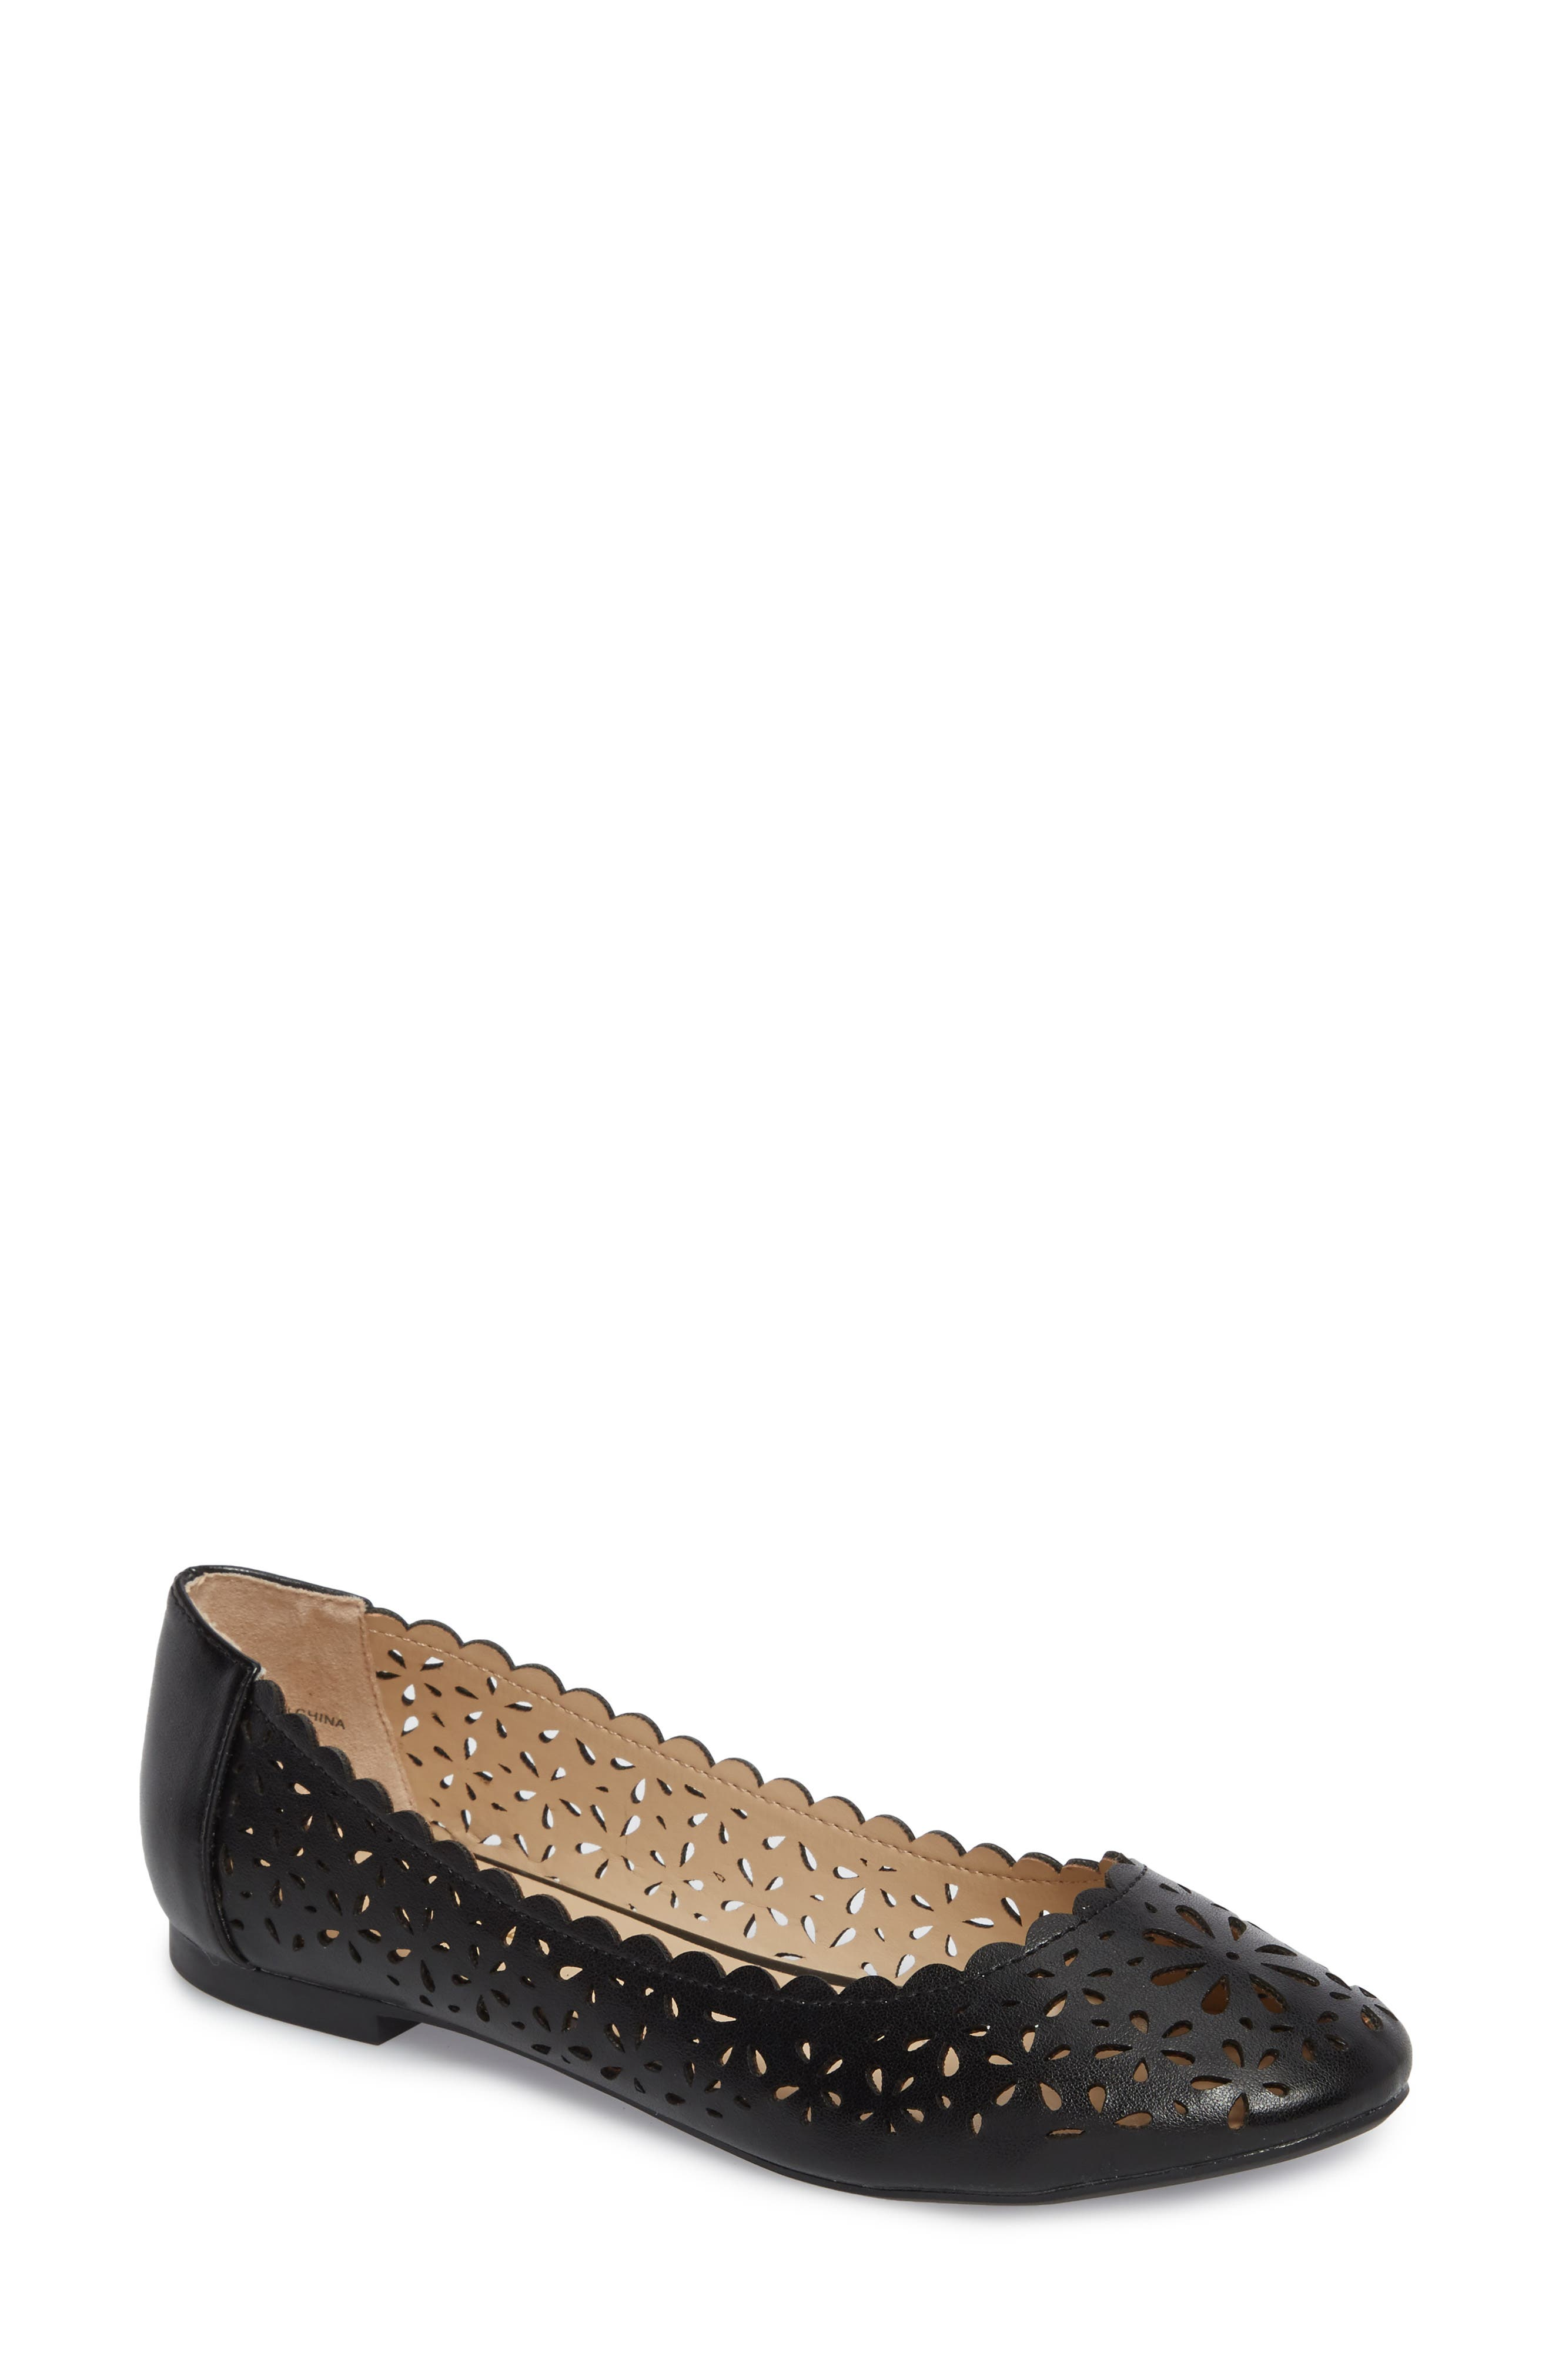 Annora Perforated Flat,                             Main thumbnail 1, color,                             Black Fabric